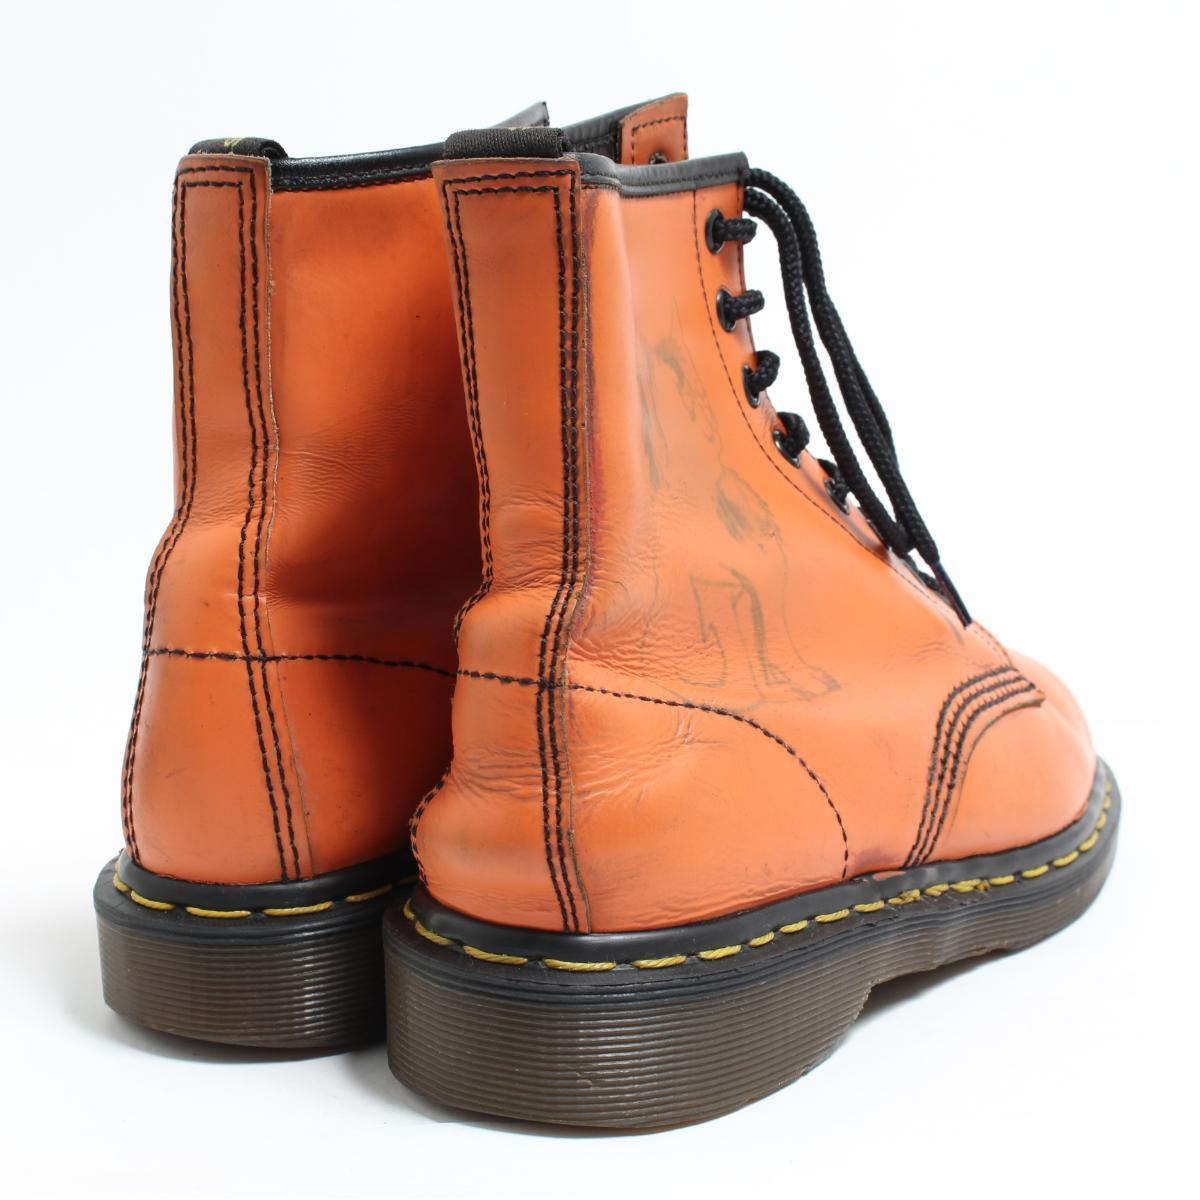 Lady's 24.5cm /bom6422 made in the doctor Martin Dr.Martens 8 hall boots U.K.